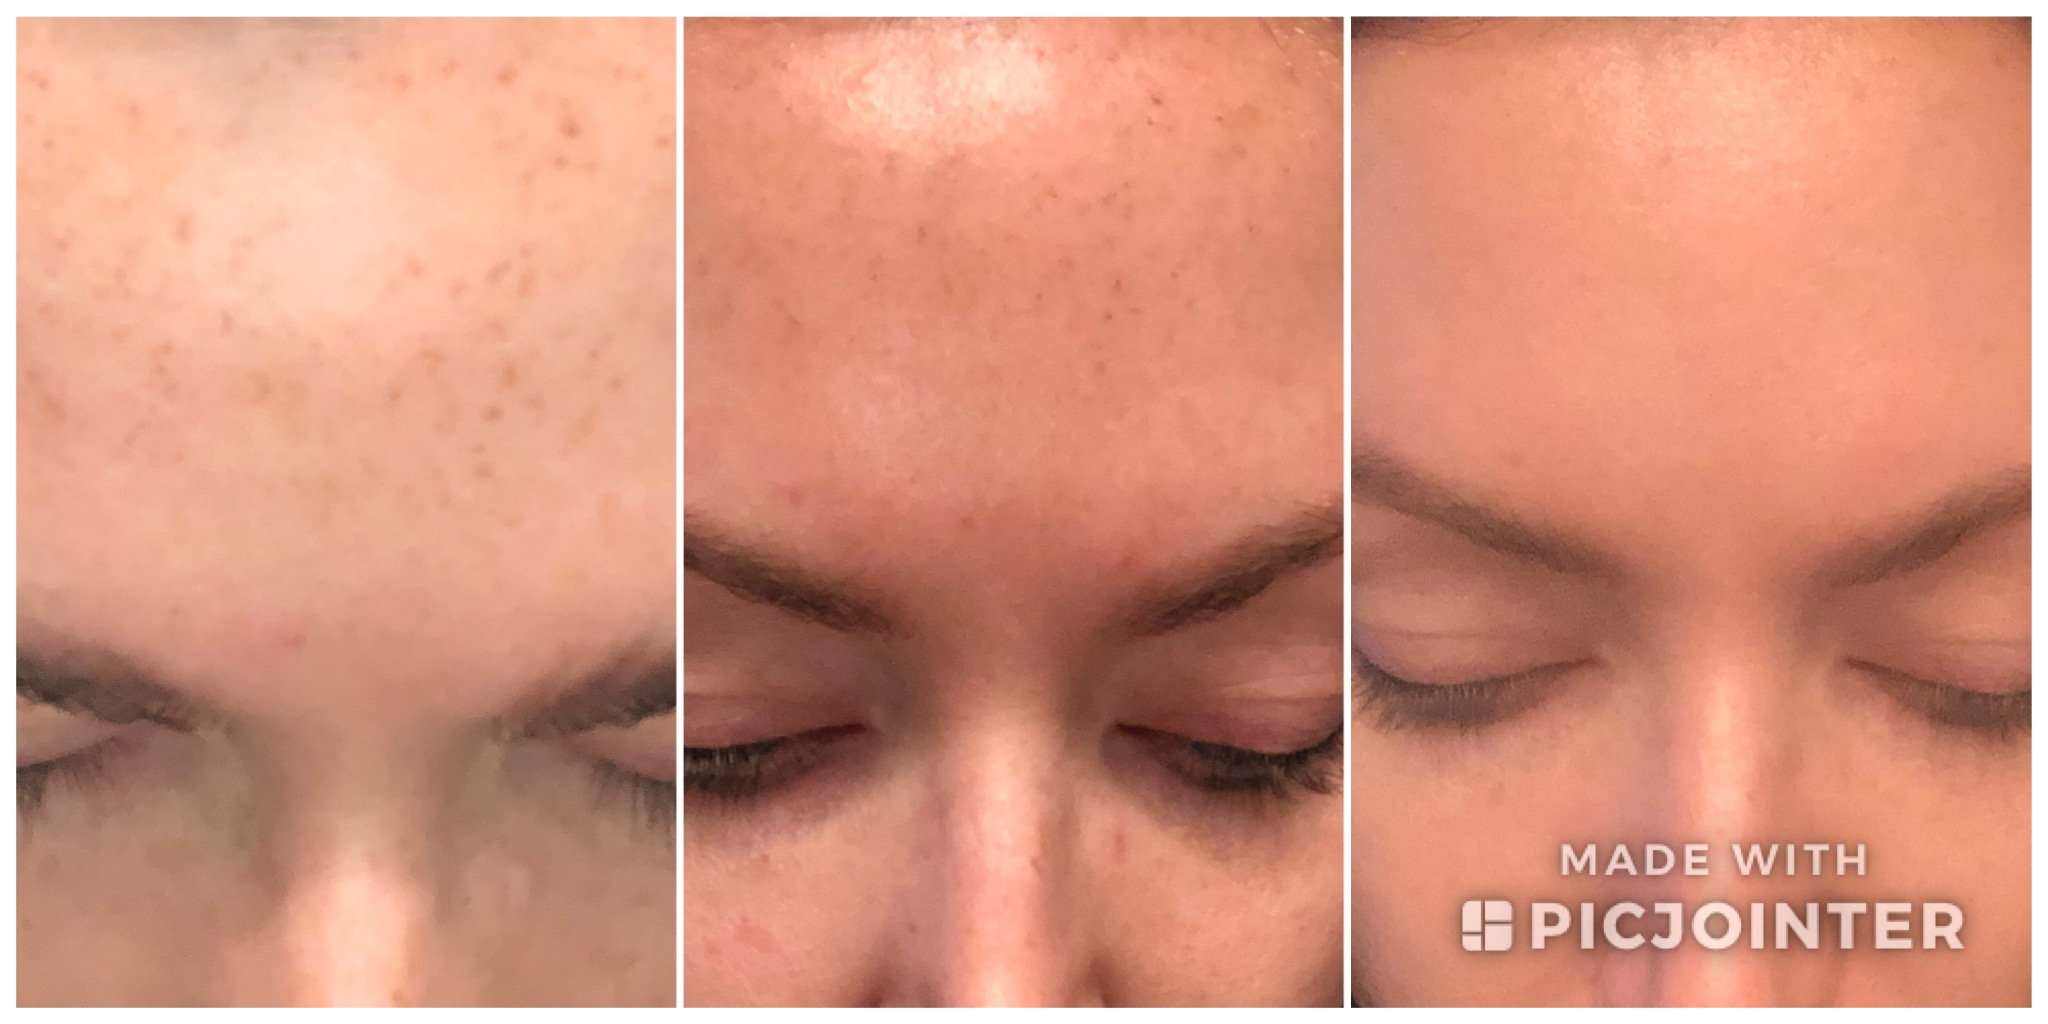 Forehead progression after second session. I actually had a lot of brown pigment come up in this area after my second treatment but by a week after it was almost completely gone.